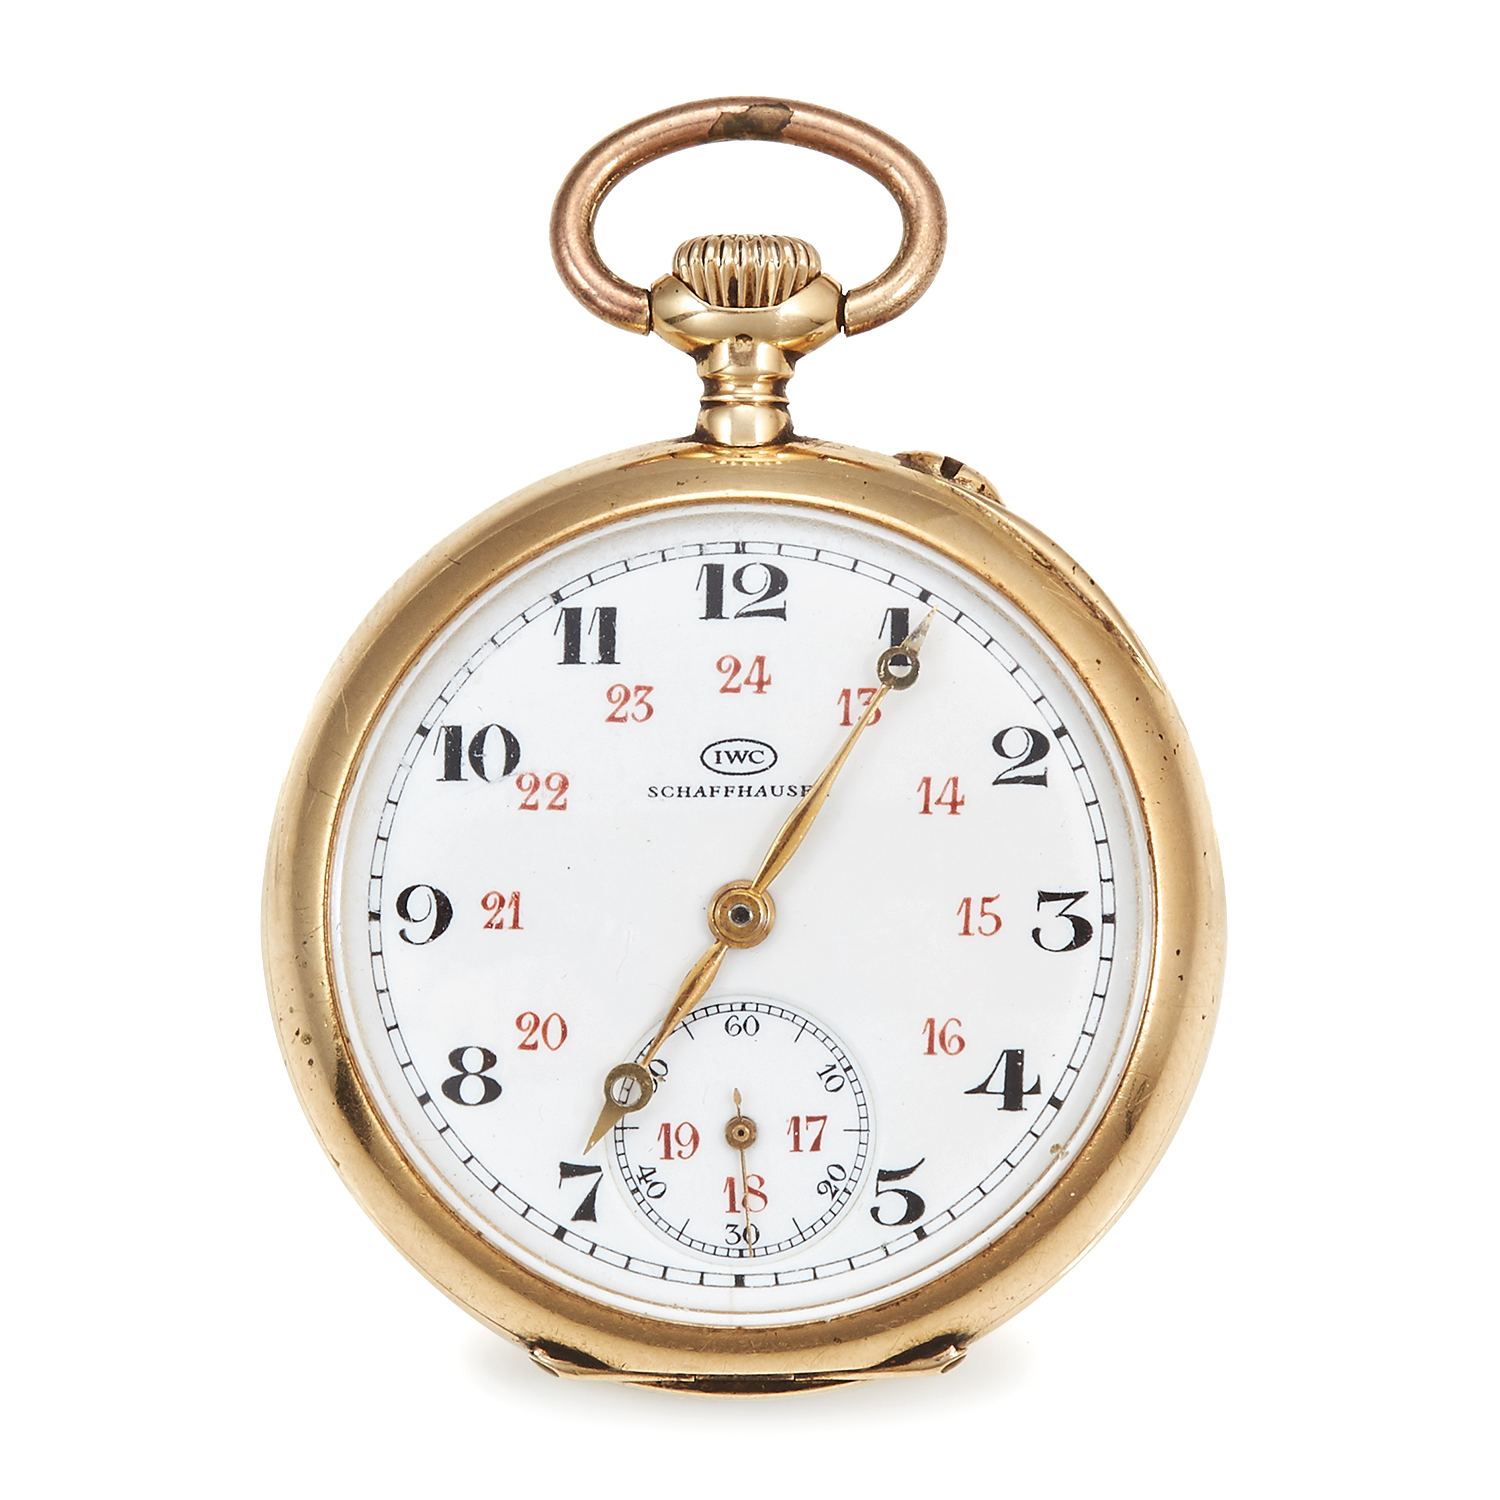 Los 471 - AN ANTIQUE POCKET WATCH, IWC SCHAFFHAUSEN in high carat yellow gold, the circular case with engraved